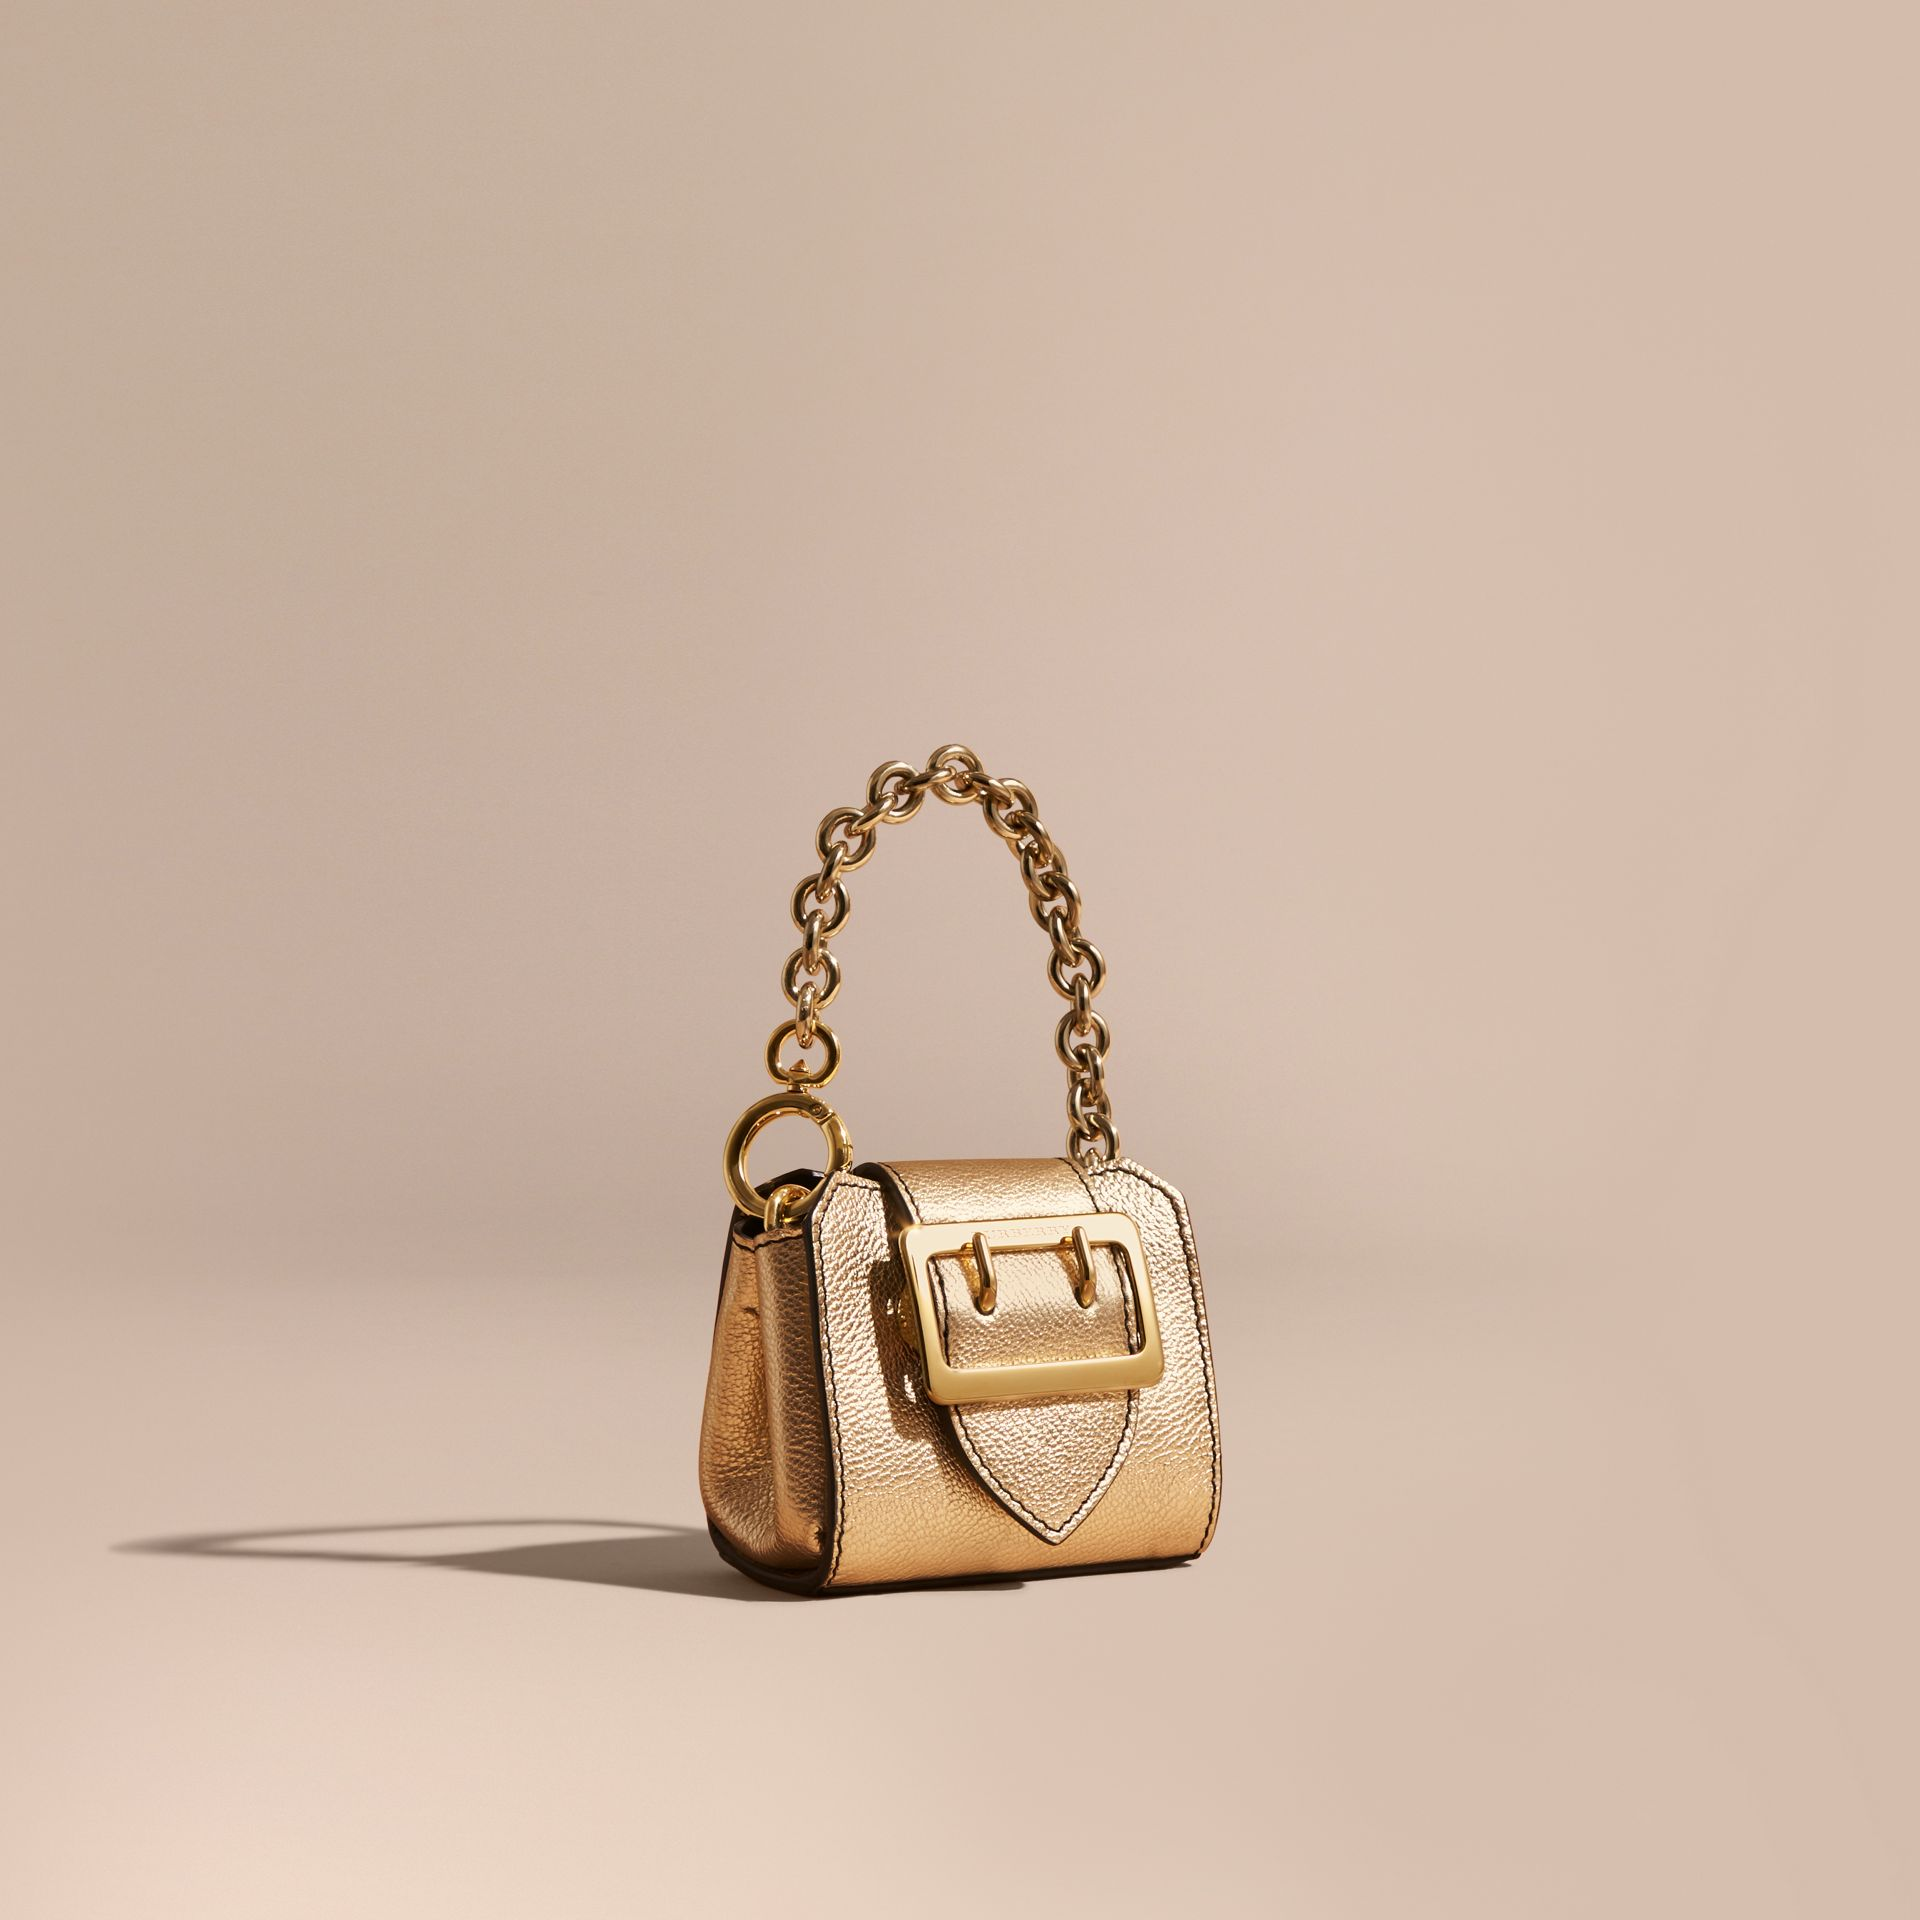 The Mini Buckle Tote Charm in Metallic Leather in Gold - gallery image 1